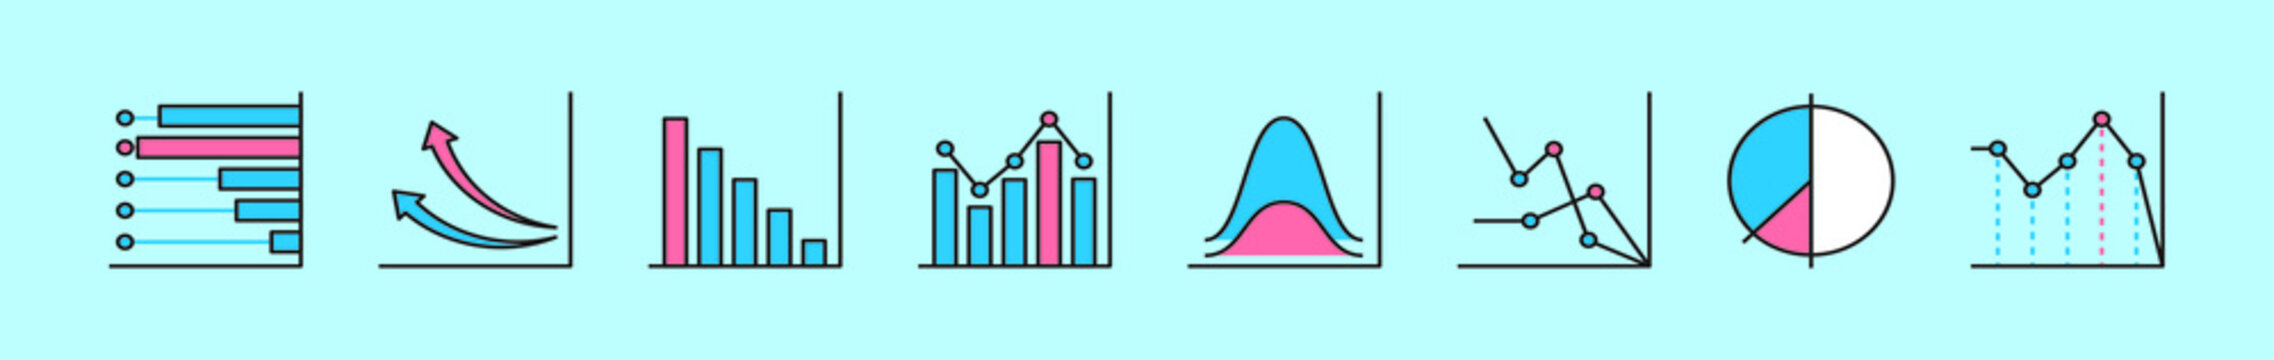 set of bell curve cartoon icon design template with various models. vector illustration isolated on blue background